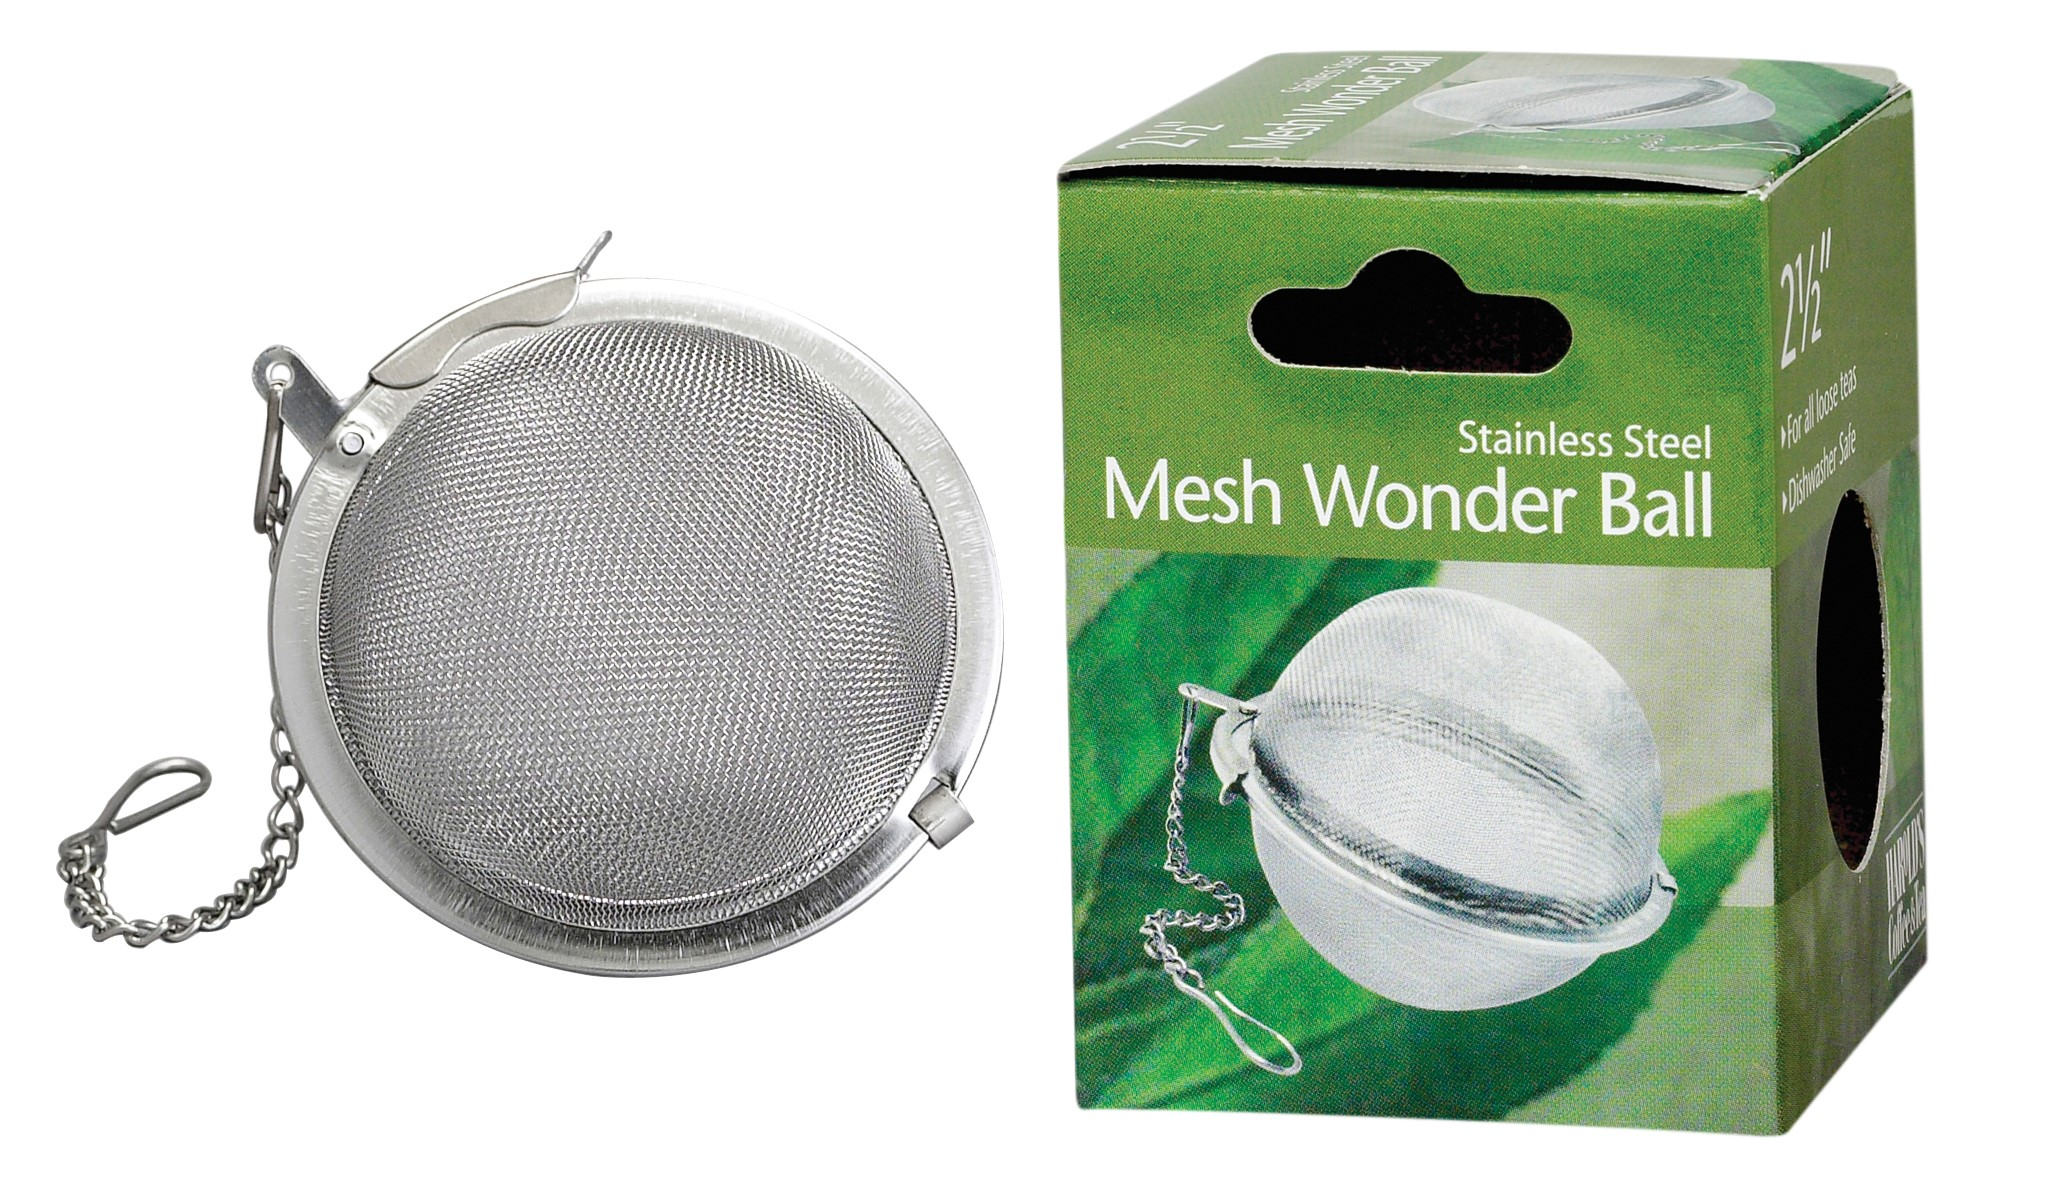 HIC Loose Leaf Tea Infuser Strainer and Herbal Infuser, 18 8 Stainless Steel, Mesh Tea Ball, 2.5-Inch by HIC Harold Import Co.